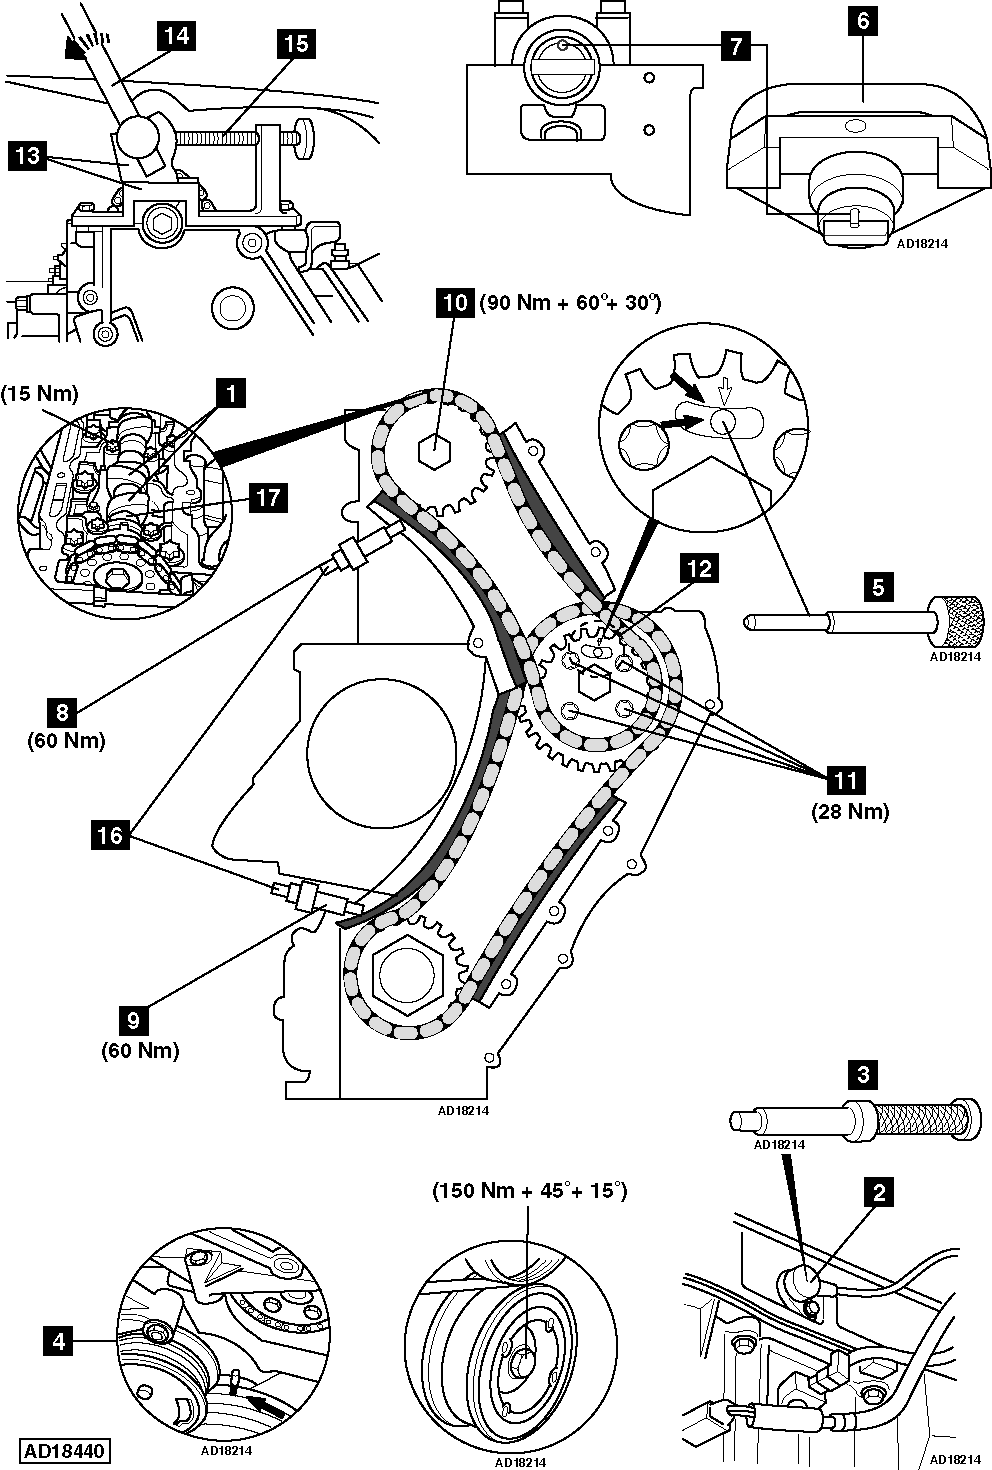 ... Wiring Diagram And Schematics Source · how to replace timing chain on  vauxhall opel astra g 2 0 dti rh replace timing